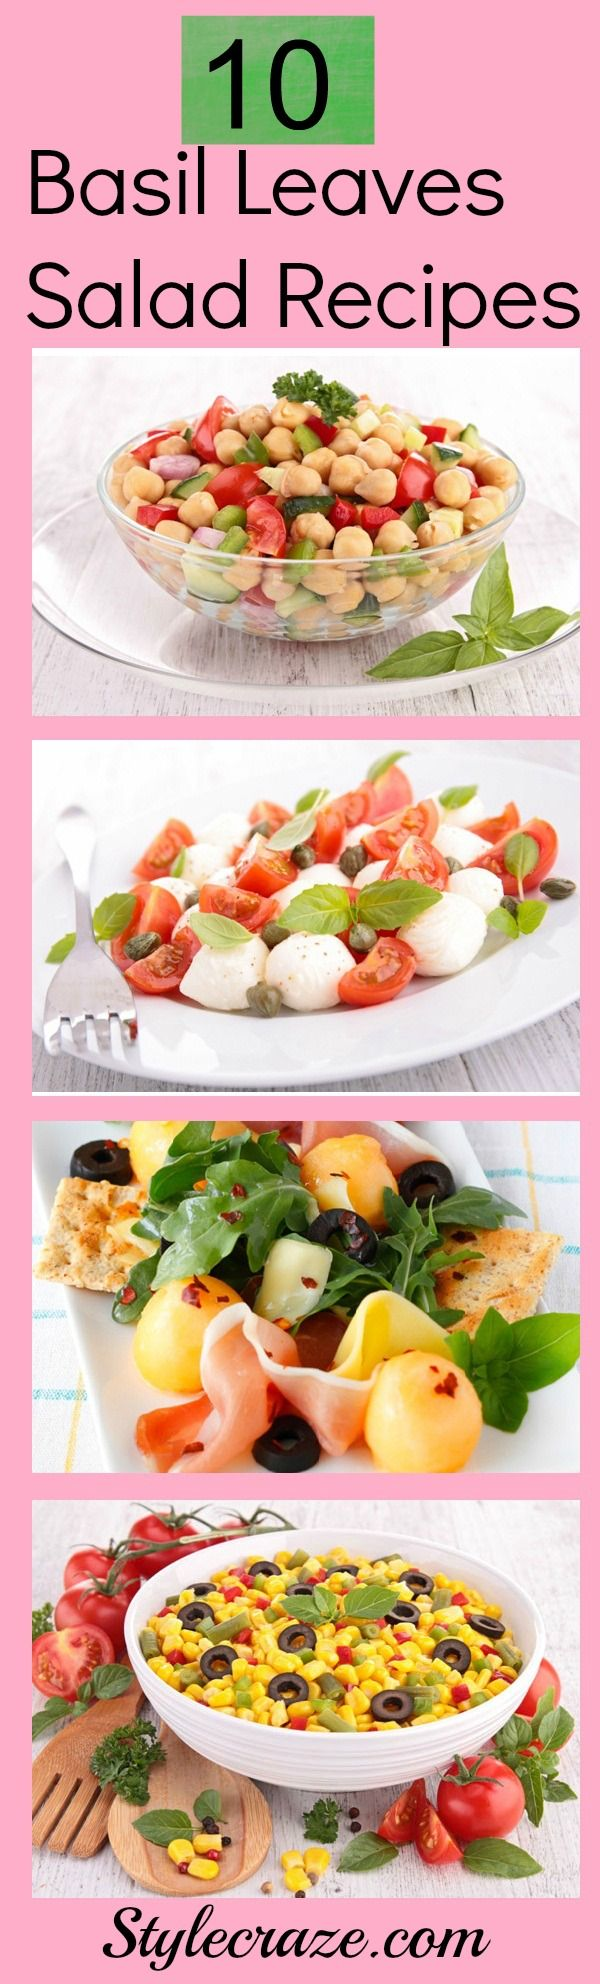 Top 10 Basil Leaves Salad Recipes You Should Try